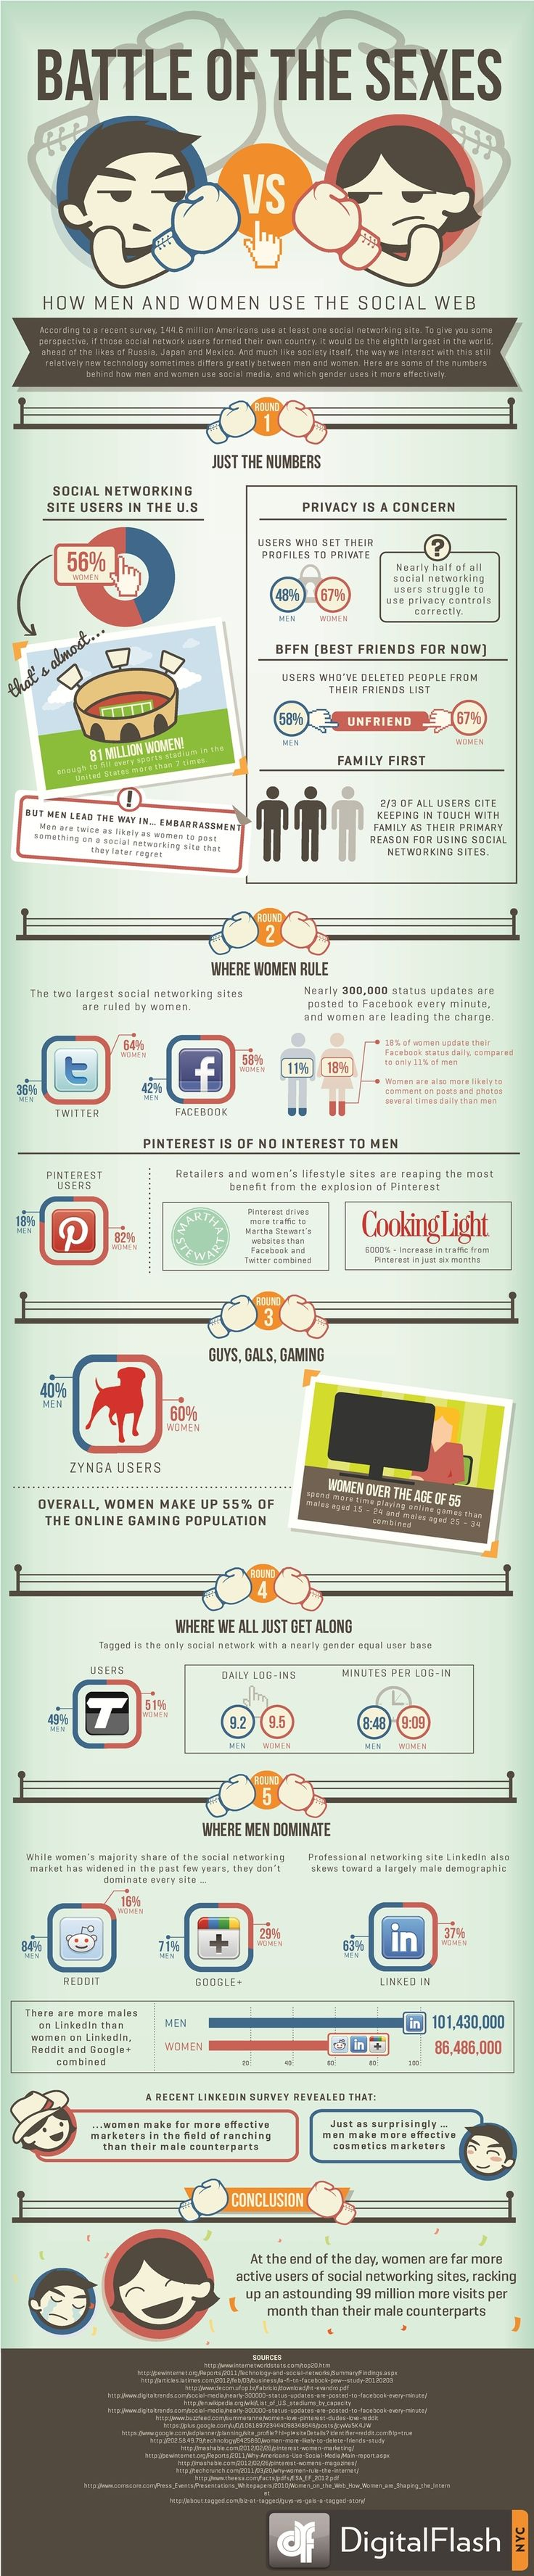 Battle of the Sexes on Social Media [Infographic] #FlowConnection